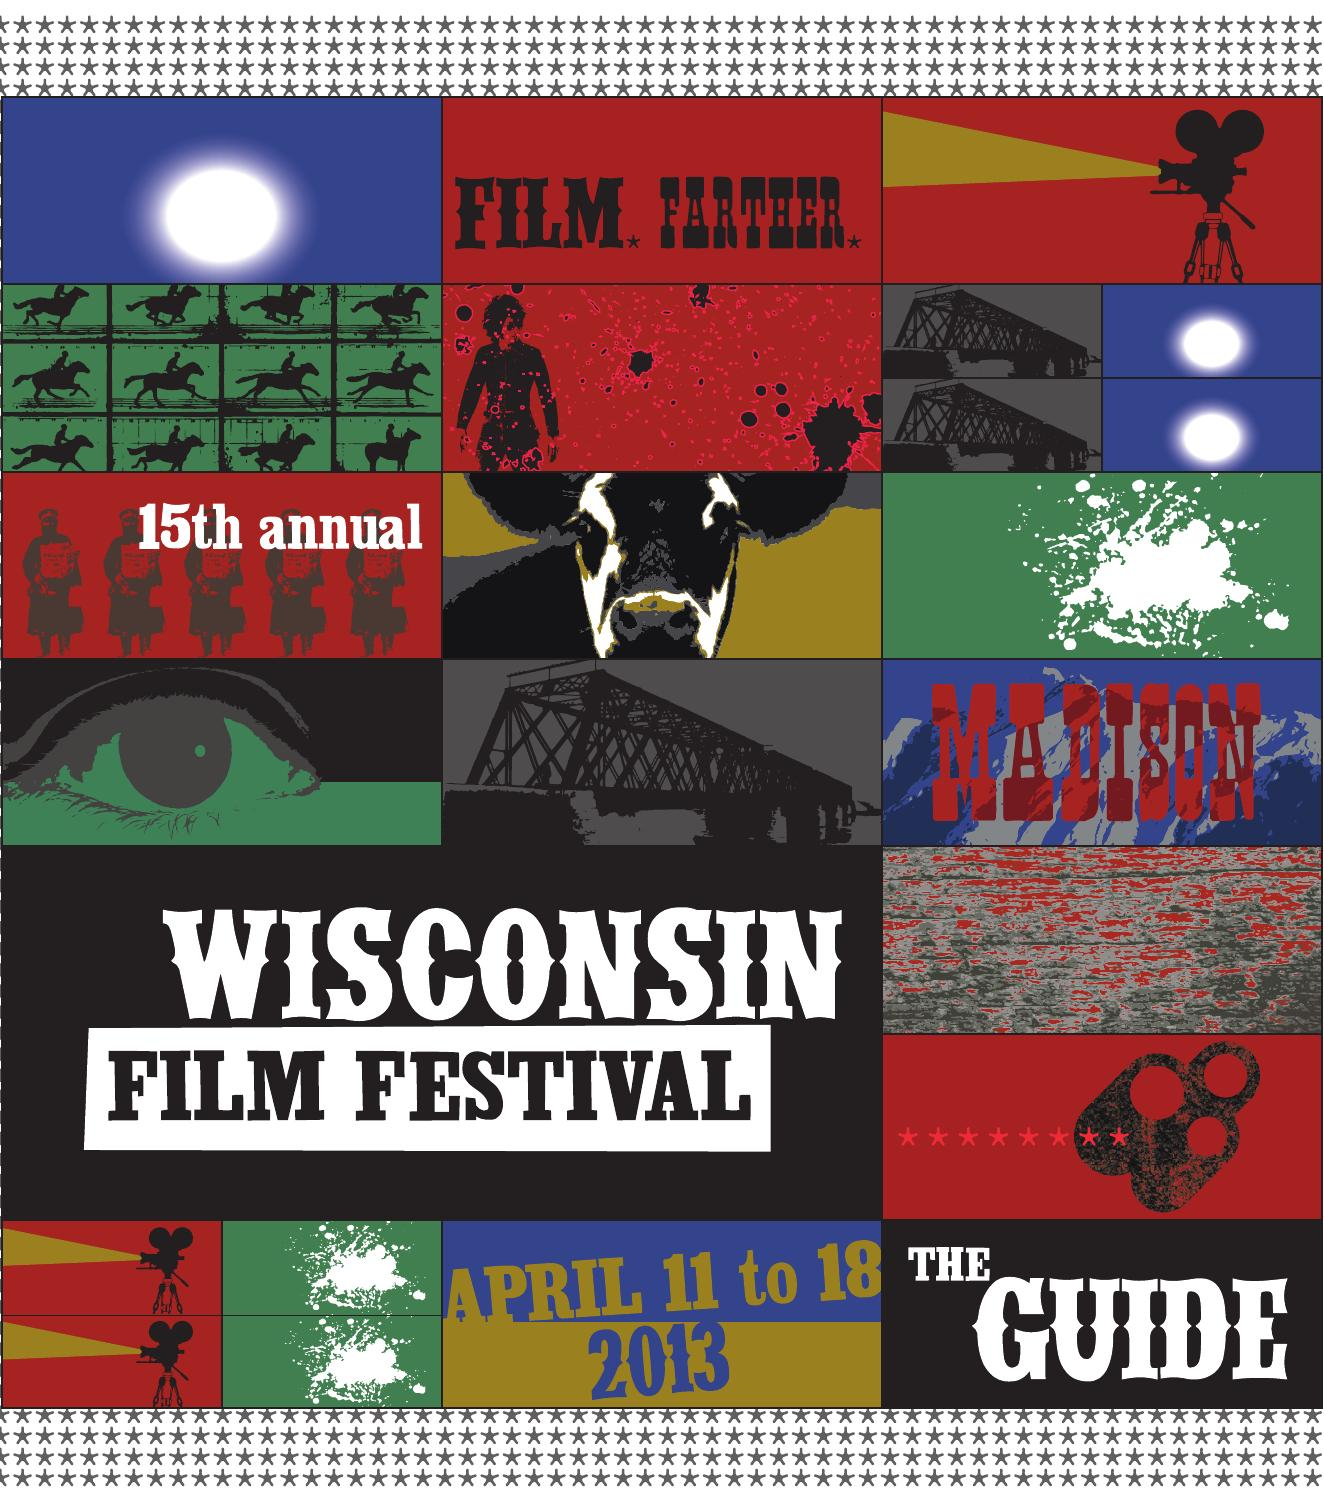 d96a1fb37a 2013 Wisconsin Film Festival Film Guide by UW-Madison Division of the Arts  - issuu